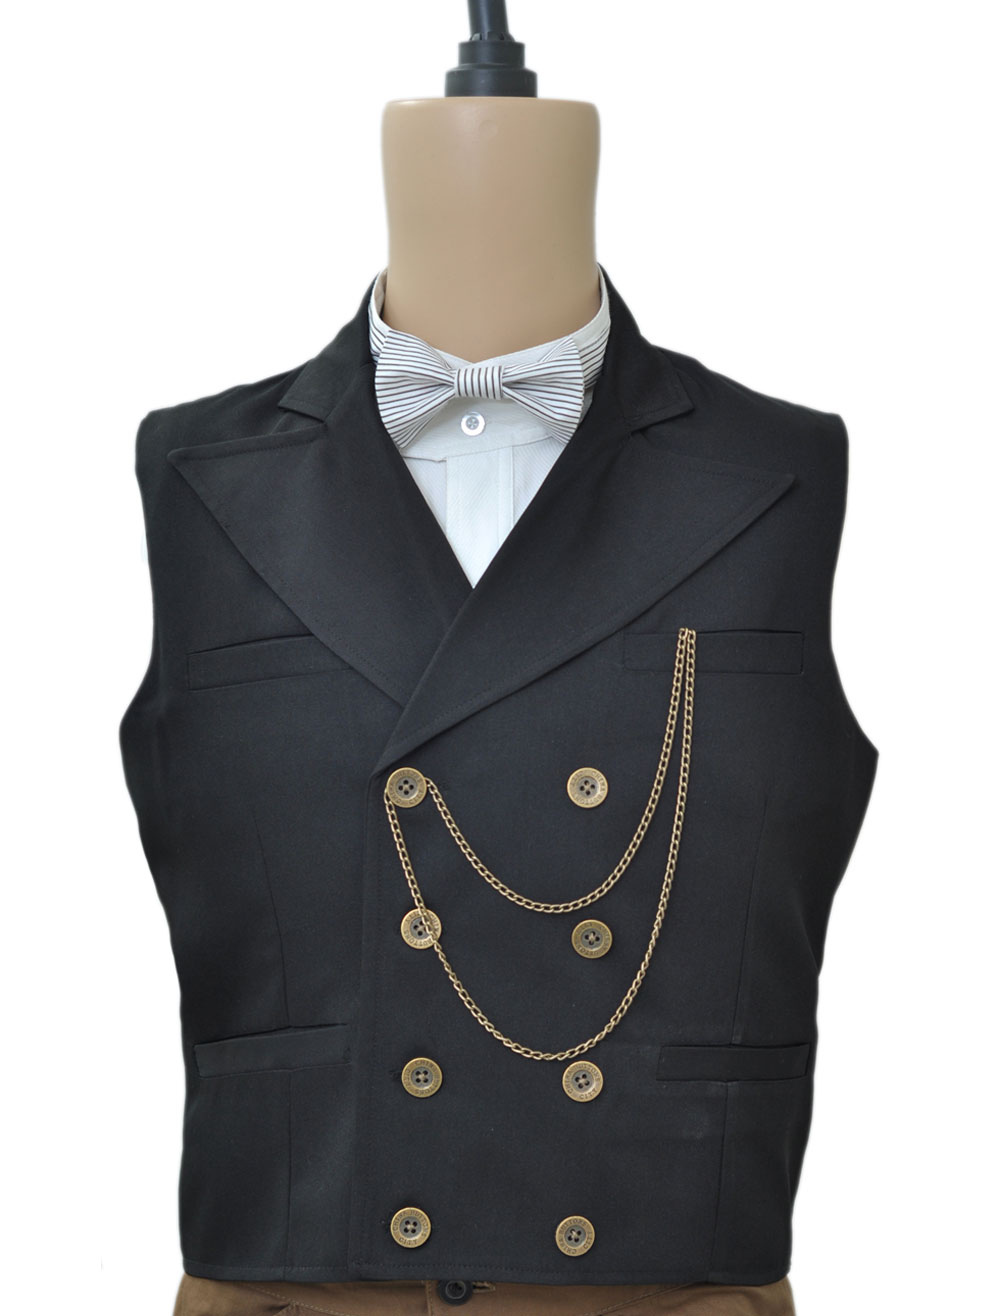 Buy Steampunk Vintage Waistcoat Black Men's Double Breasted Suit Vest Pocket Watch Chain Back Strap Retro Costume Halloween for $61.99 in Milanoo store